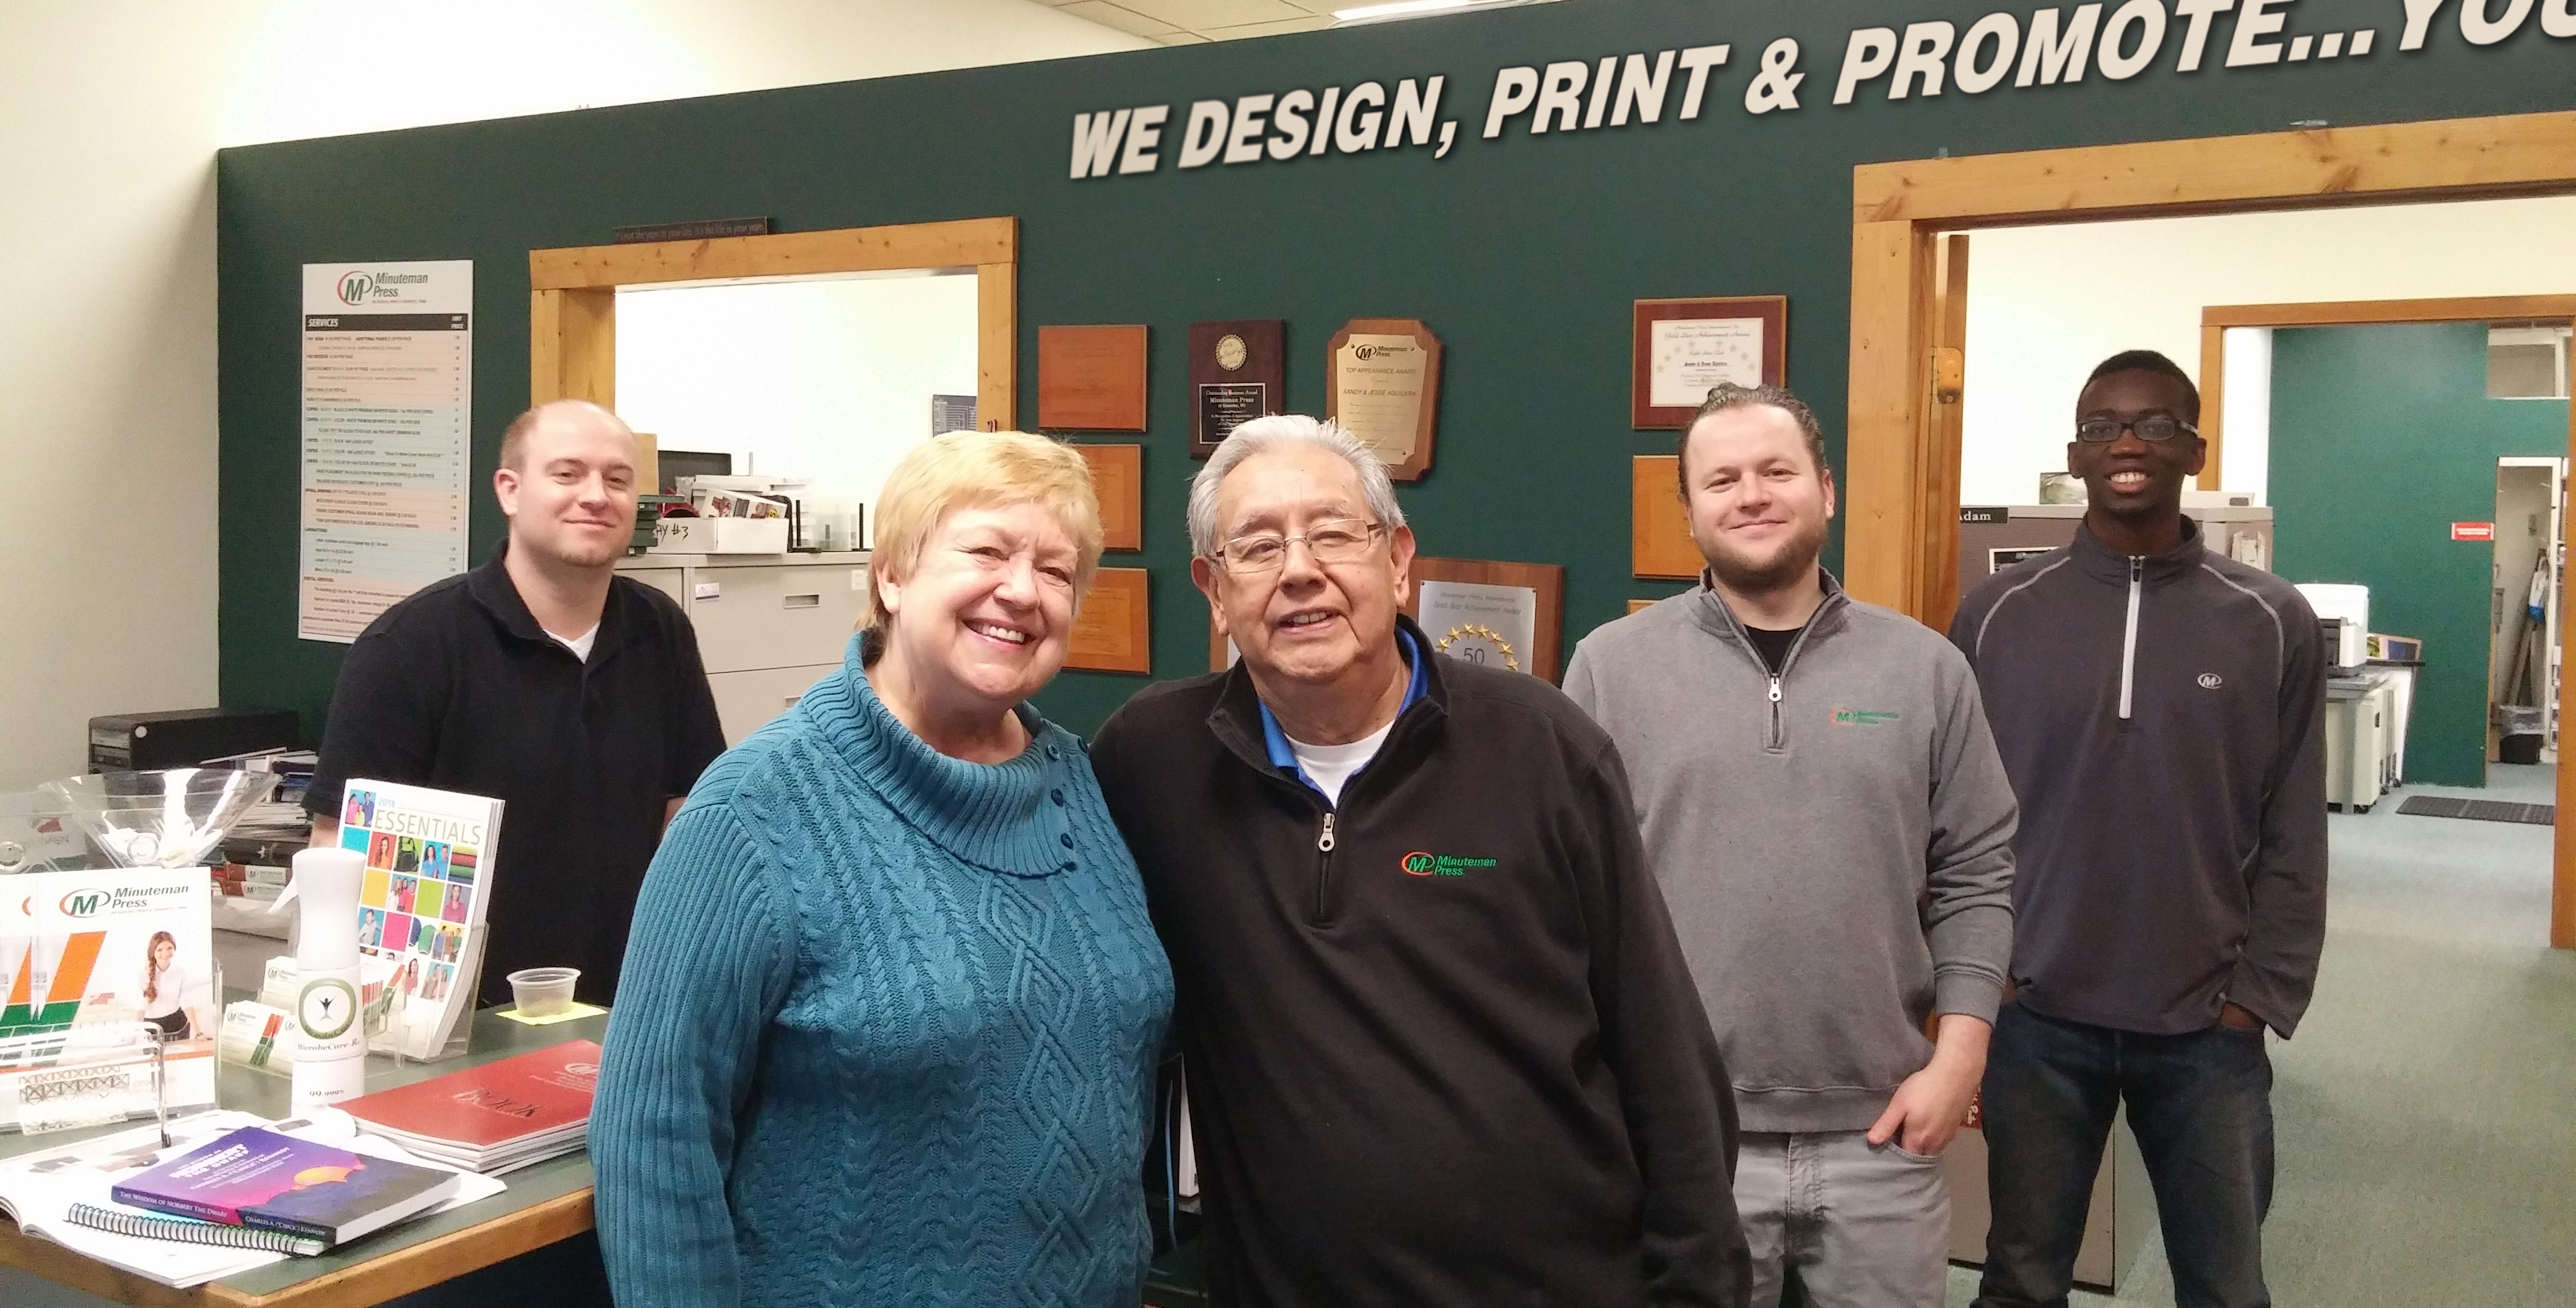 Minuteman Press printing franchise, Kenosha, Wisconsin - Owners Sandy and Jesse Aguilera (front center) along with their team members Adam, Dan, and Cale. http://www.minutemanpressfranchise.com